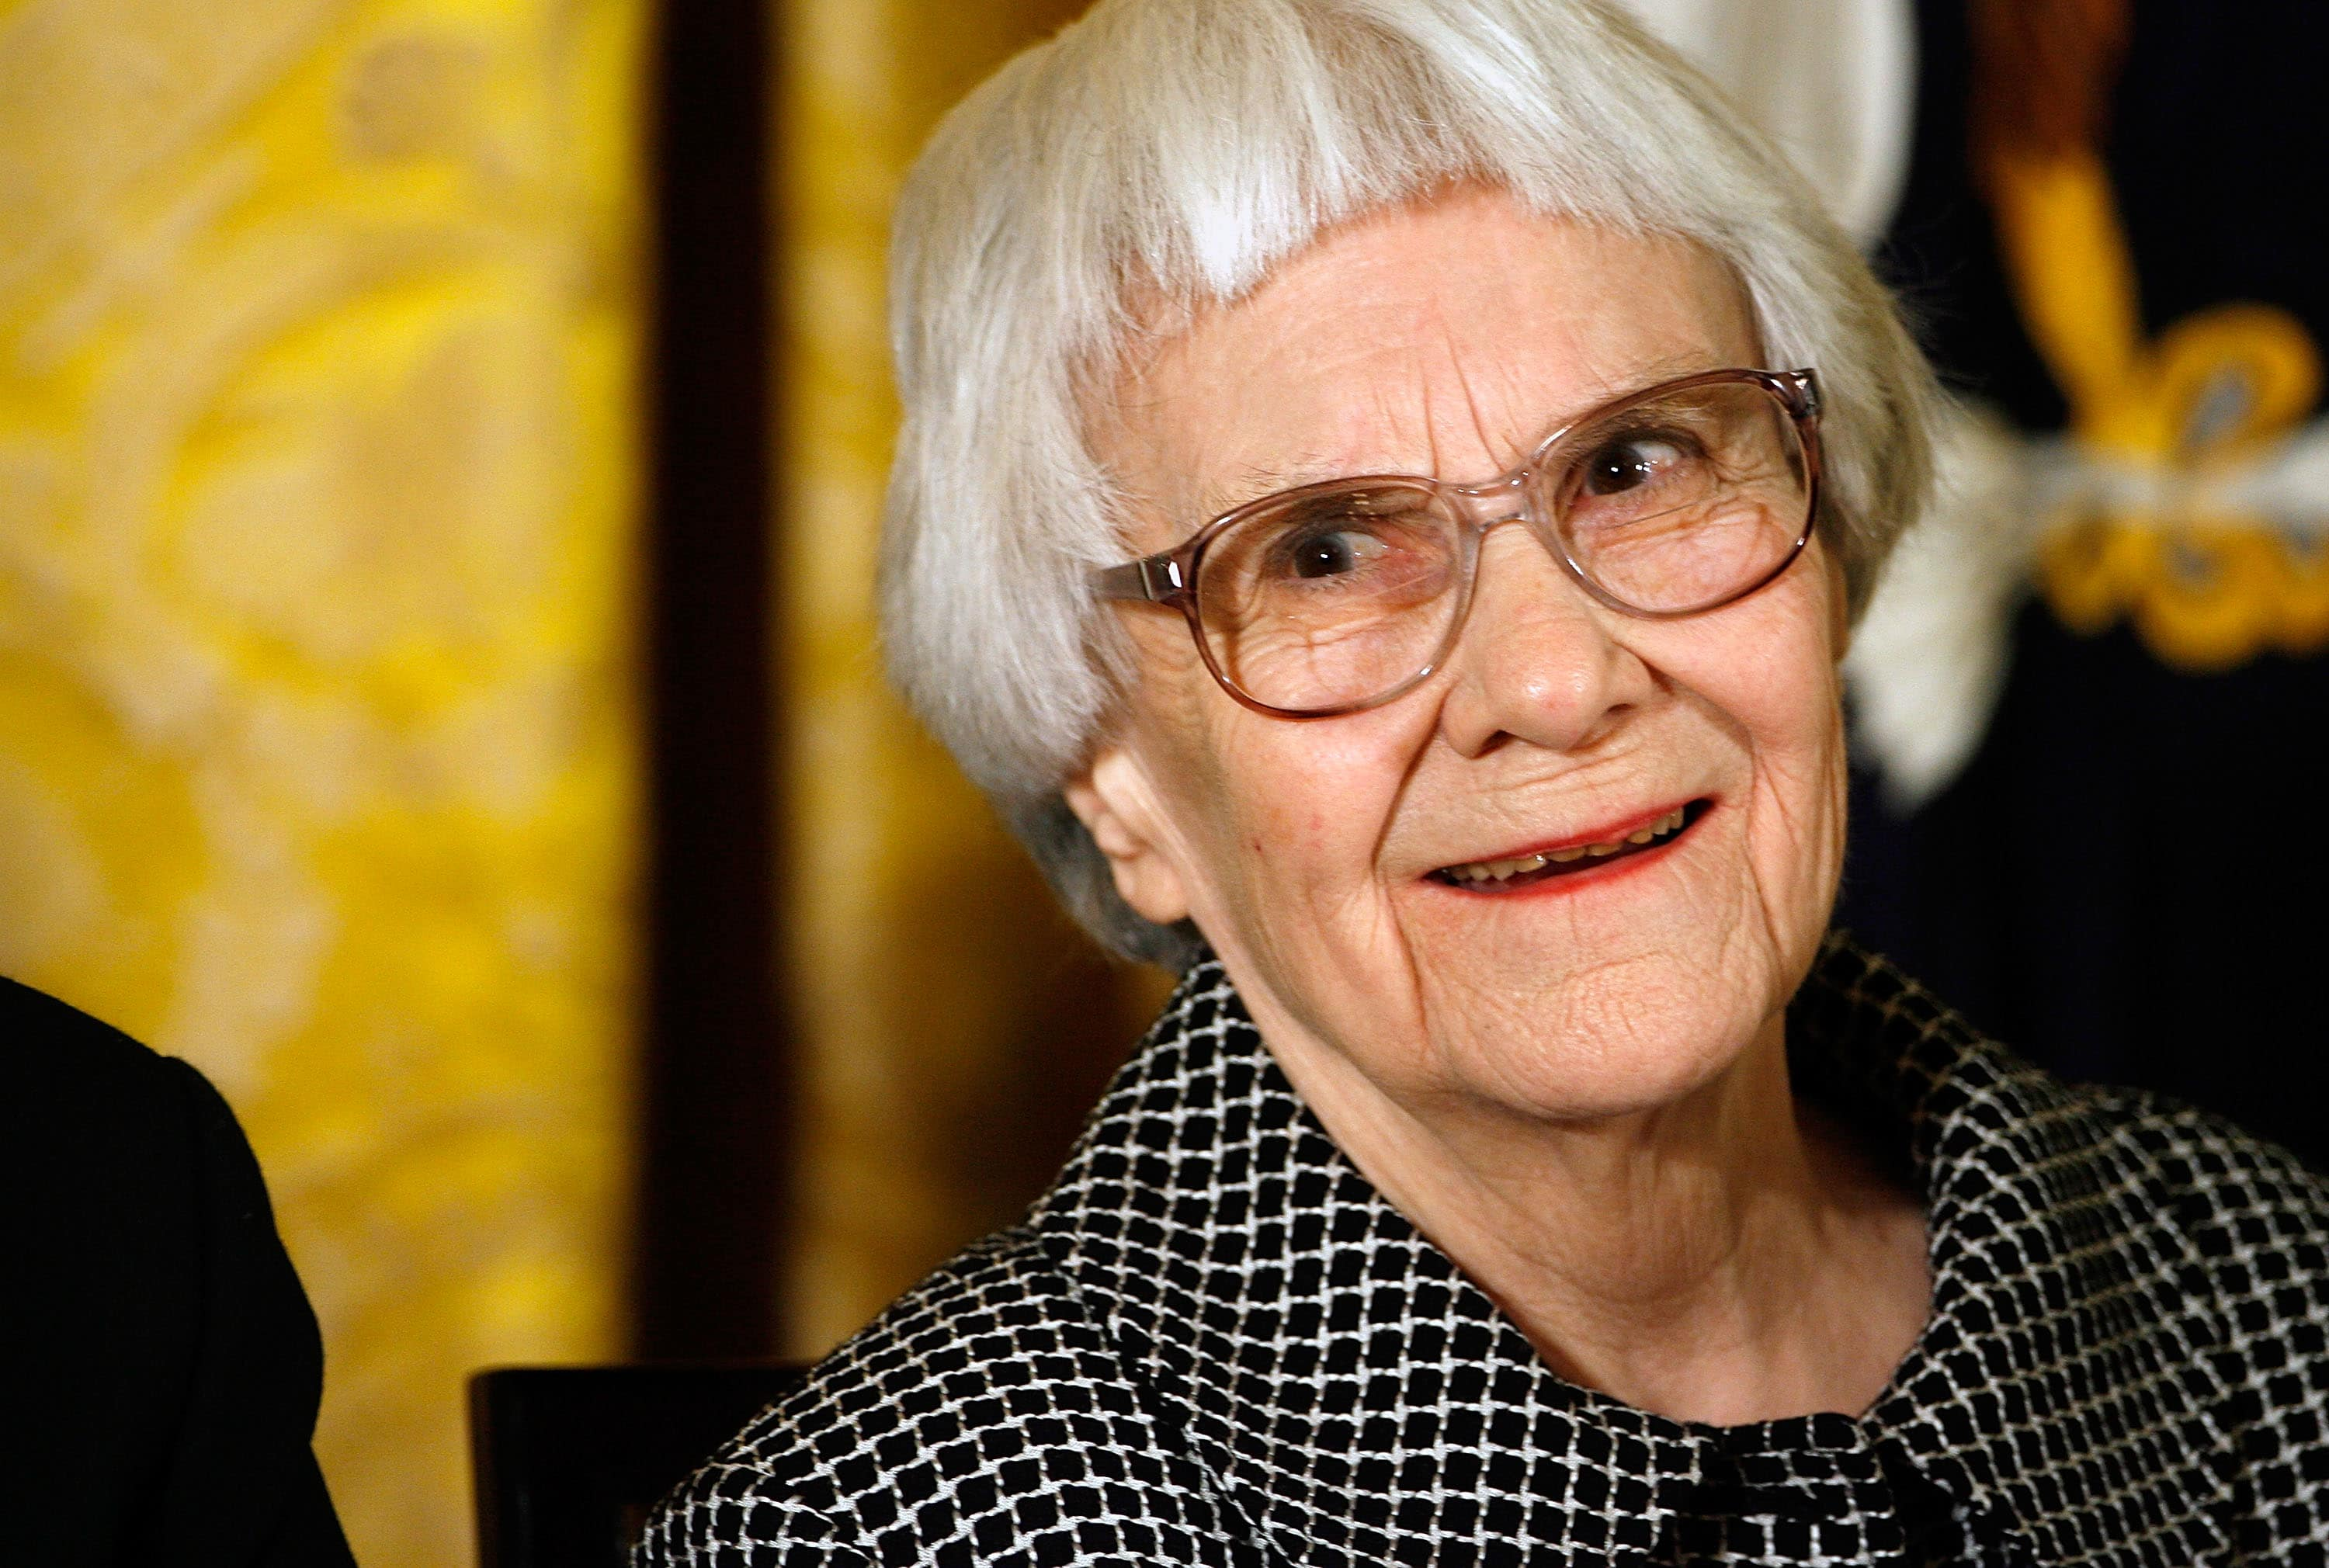 Harper Lee to publish sequel to 'To Kill a Mockingbird' - The Washington  Post